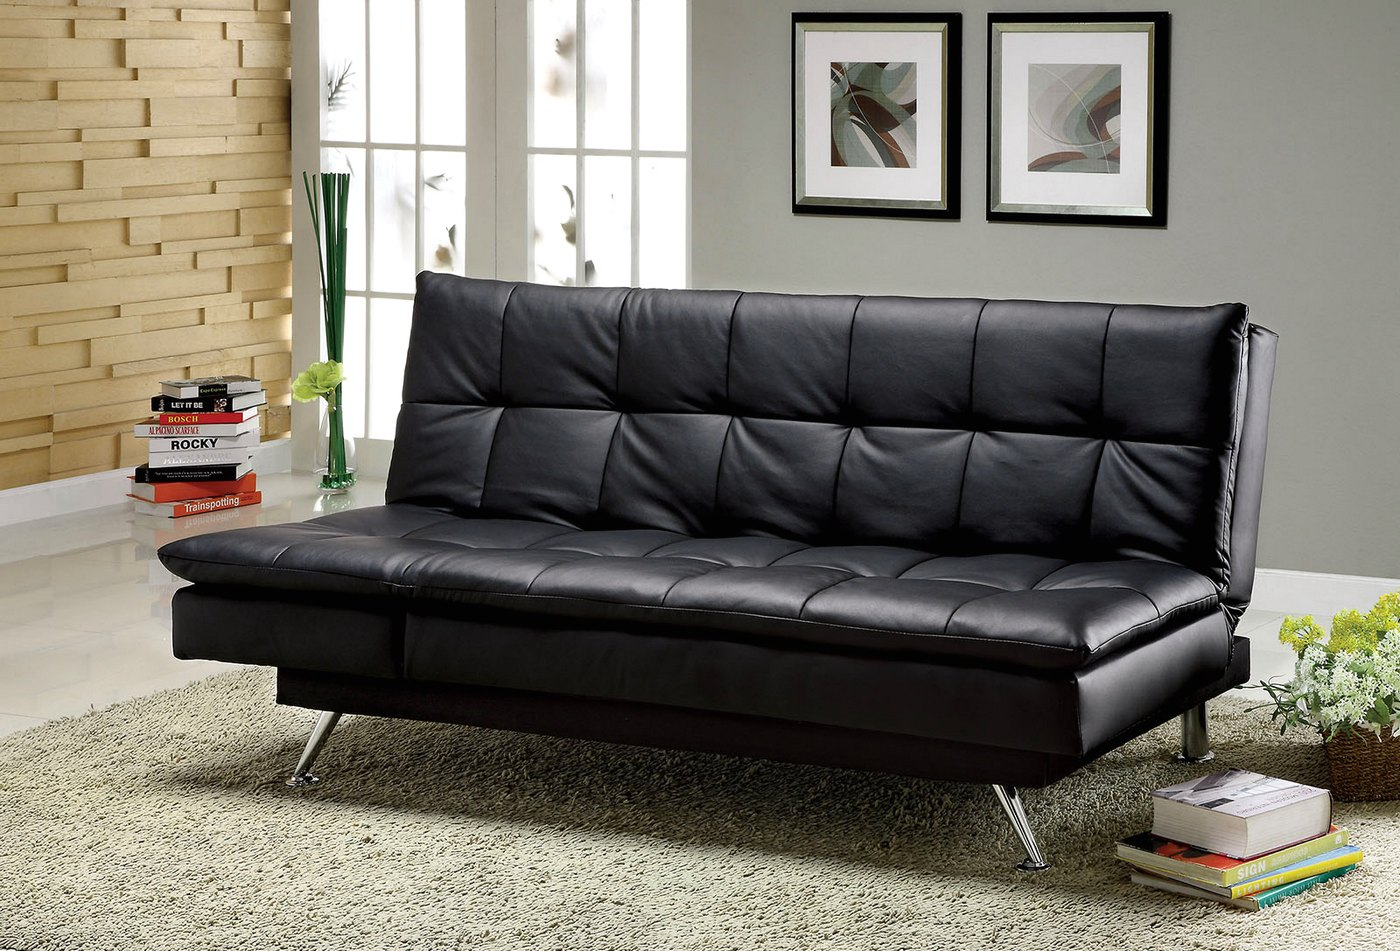 Hasty Contemporary Black Sofa Set with Leatherette Seat CM2750